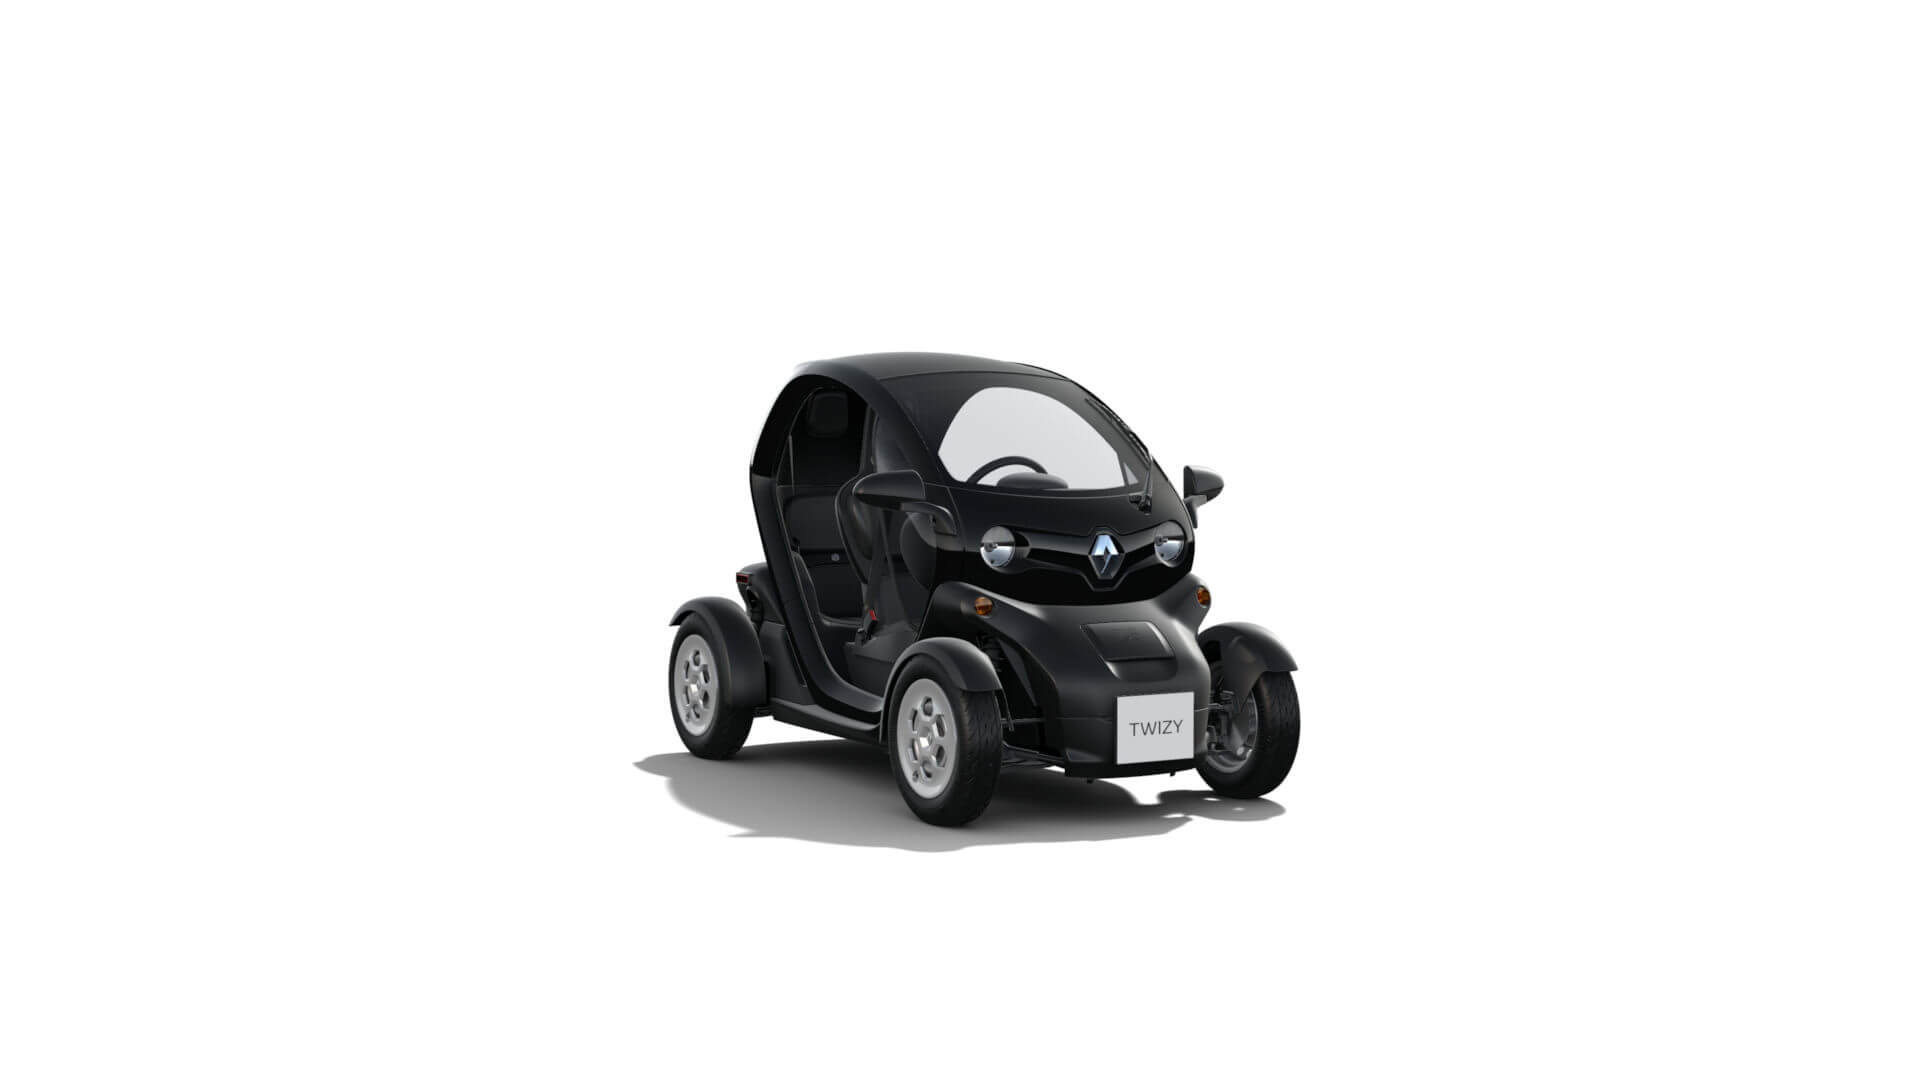 Automodell schwarz - Renault Twizy - Renault Ahrens Hannover